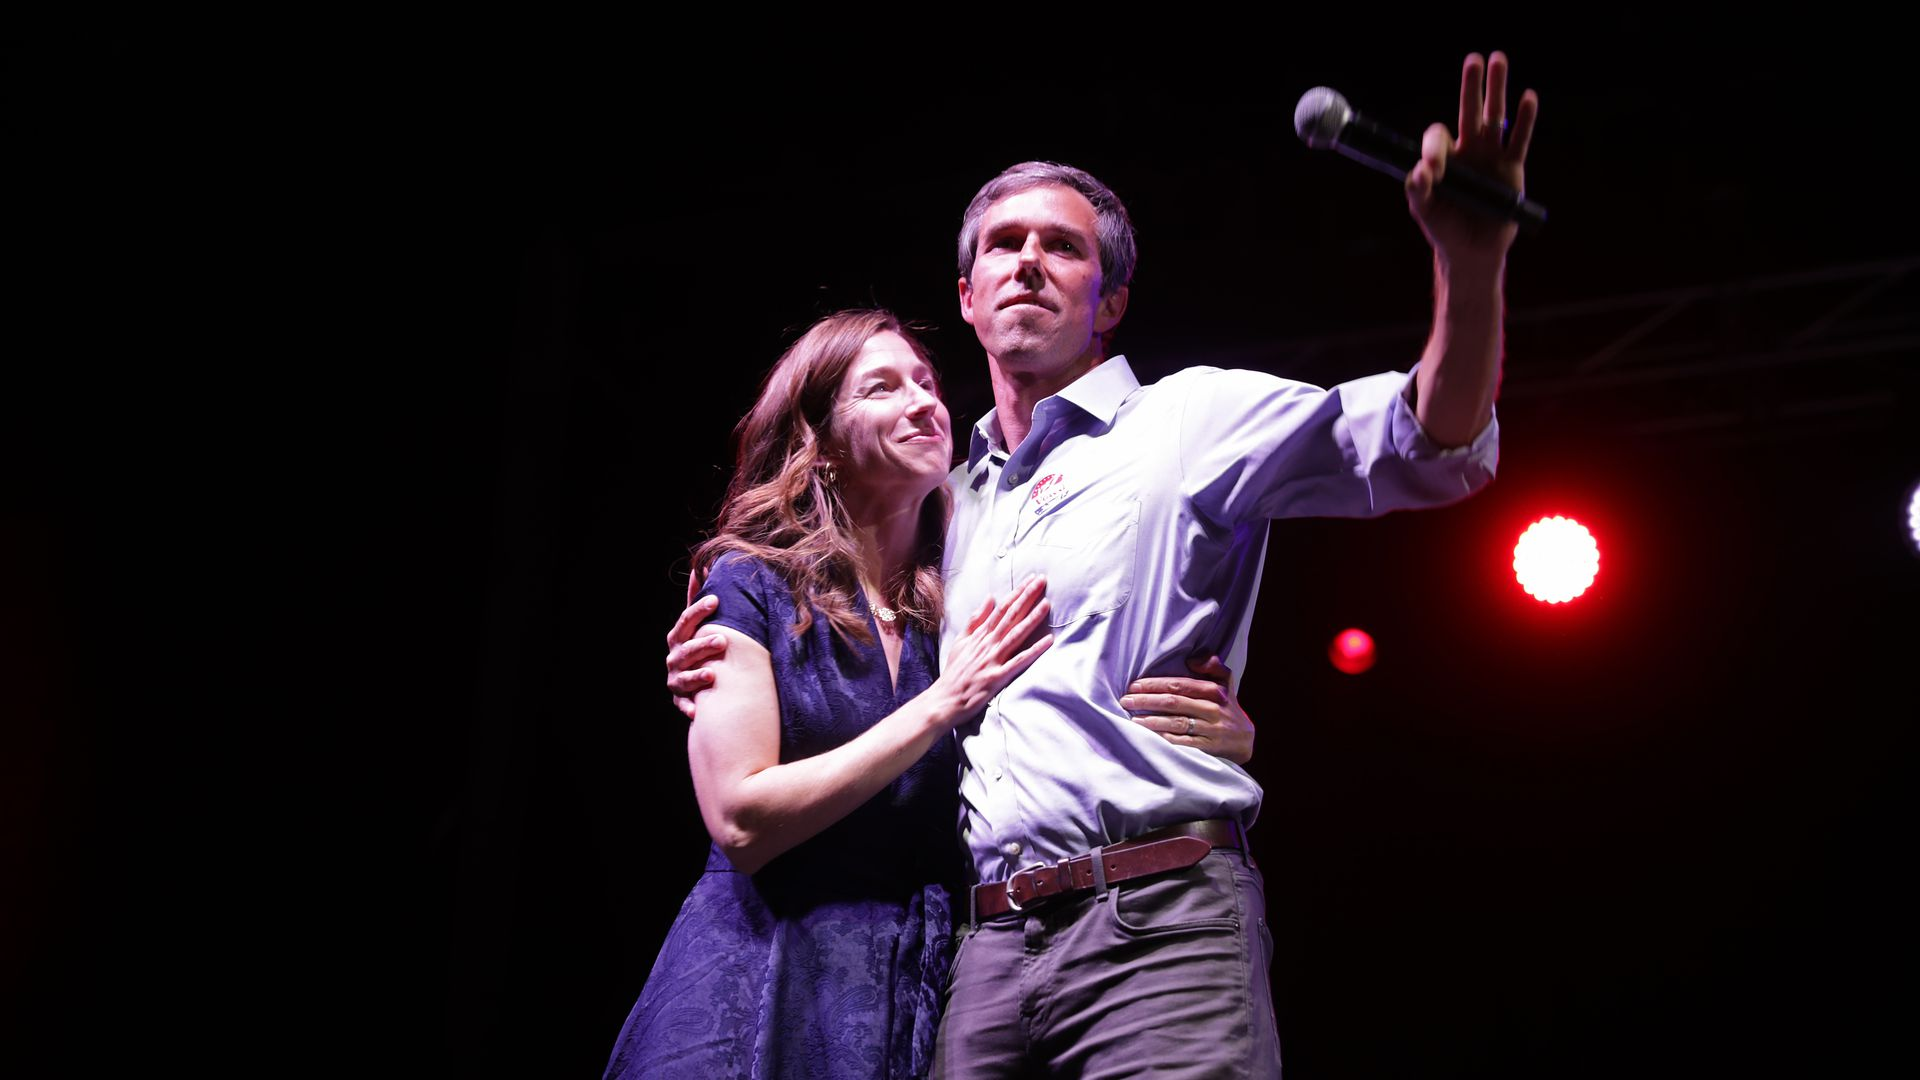 Beto O'Rourke and wife Amy Sanders arrive onstage at Southwest University Park November 06, 2018 in El Paso, Texas.